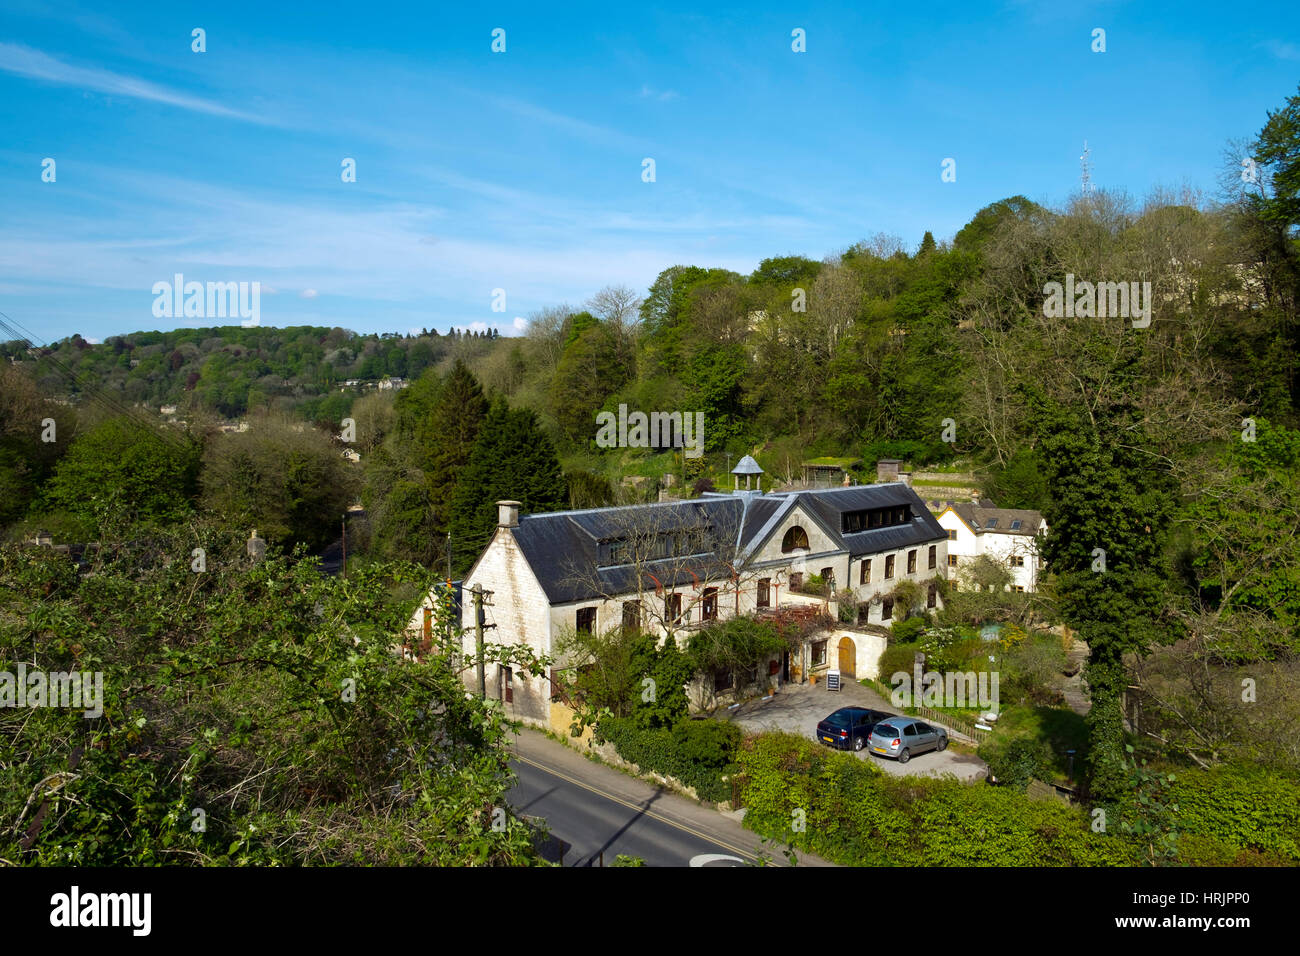 Nailsworth, England, UK - May 2016: Ruskin Mill is one of many historic mill buildings around Stroud, Gloucestershire, - Stock Image